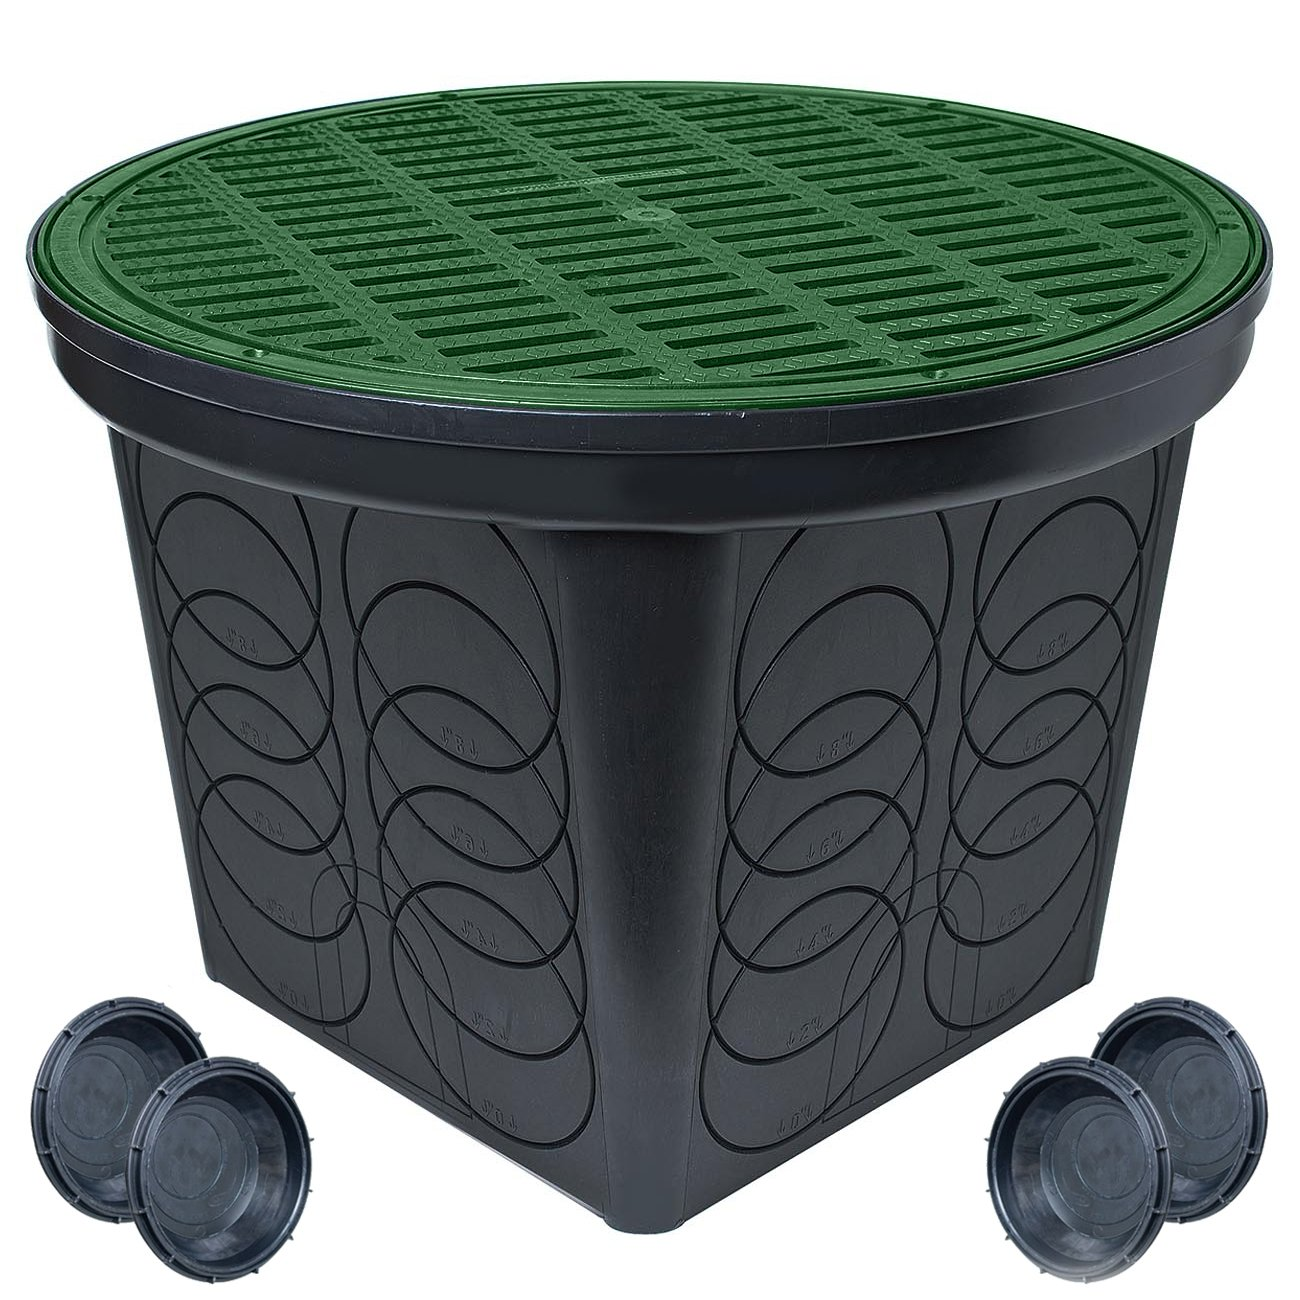 StormDrain FSD-3017 20 in. Large Round Catch Basin with Green Grate Kit